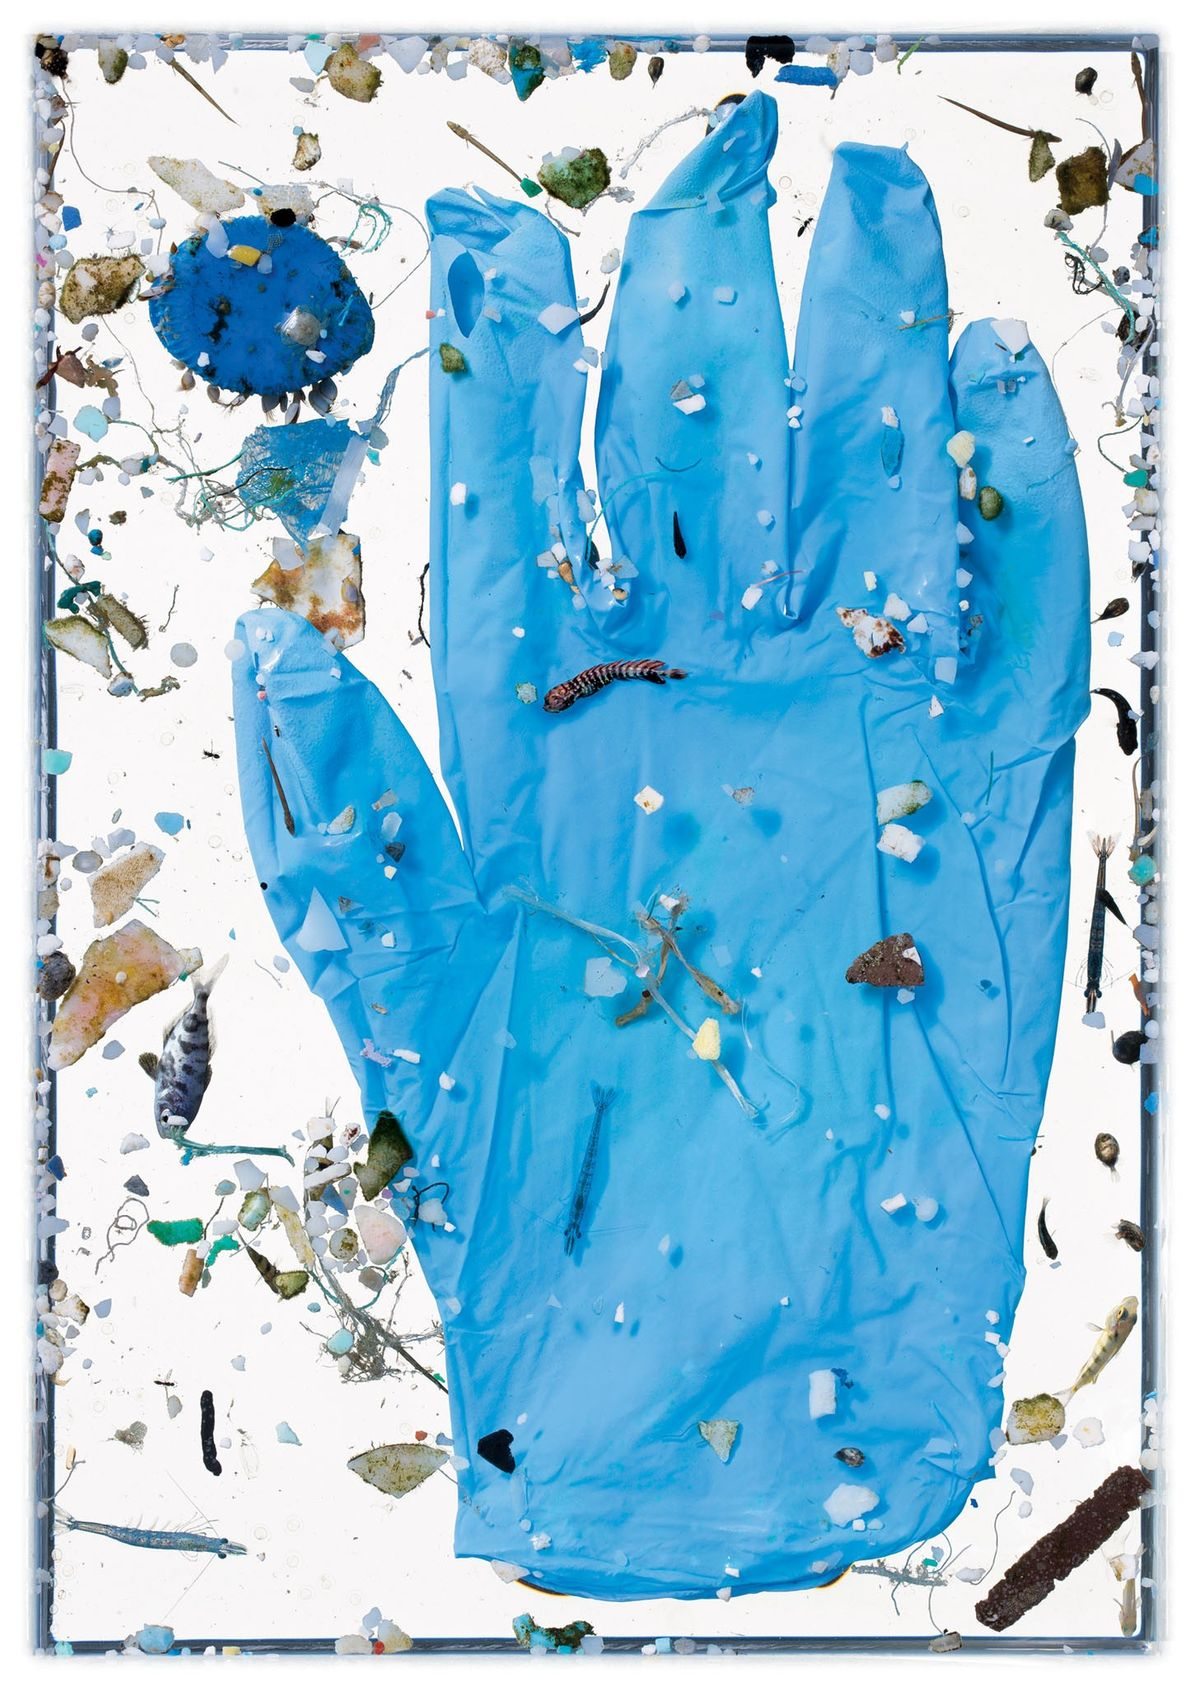 The blue glove hasn't been in the water long enough to suffer the fate of most ...